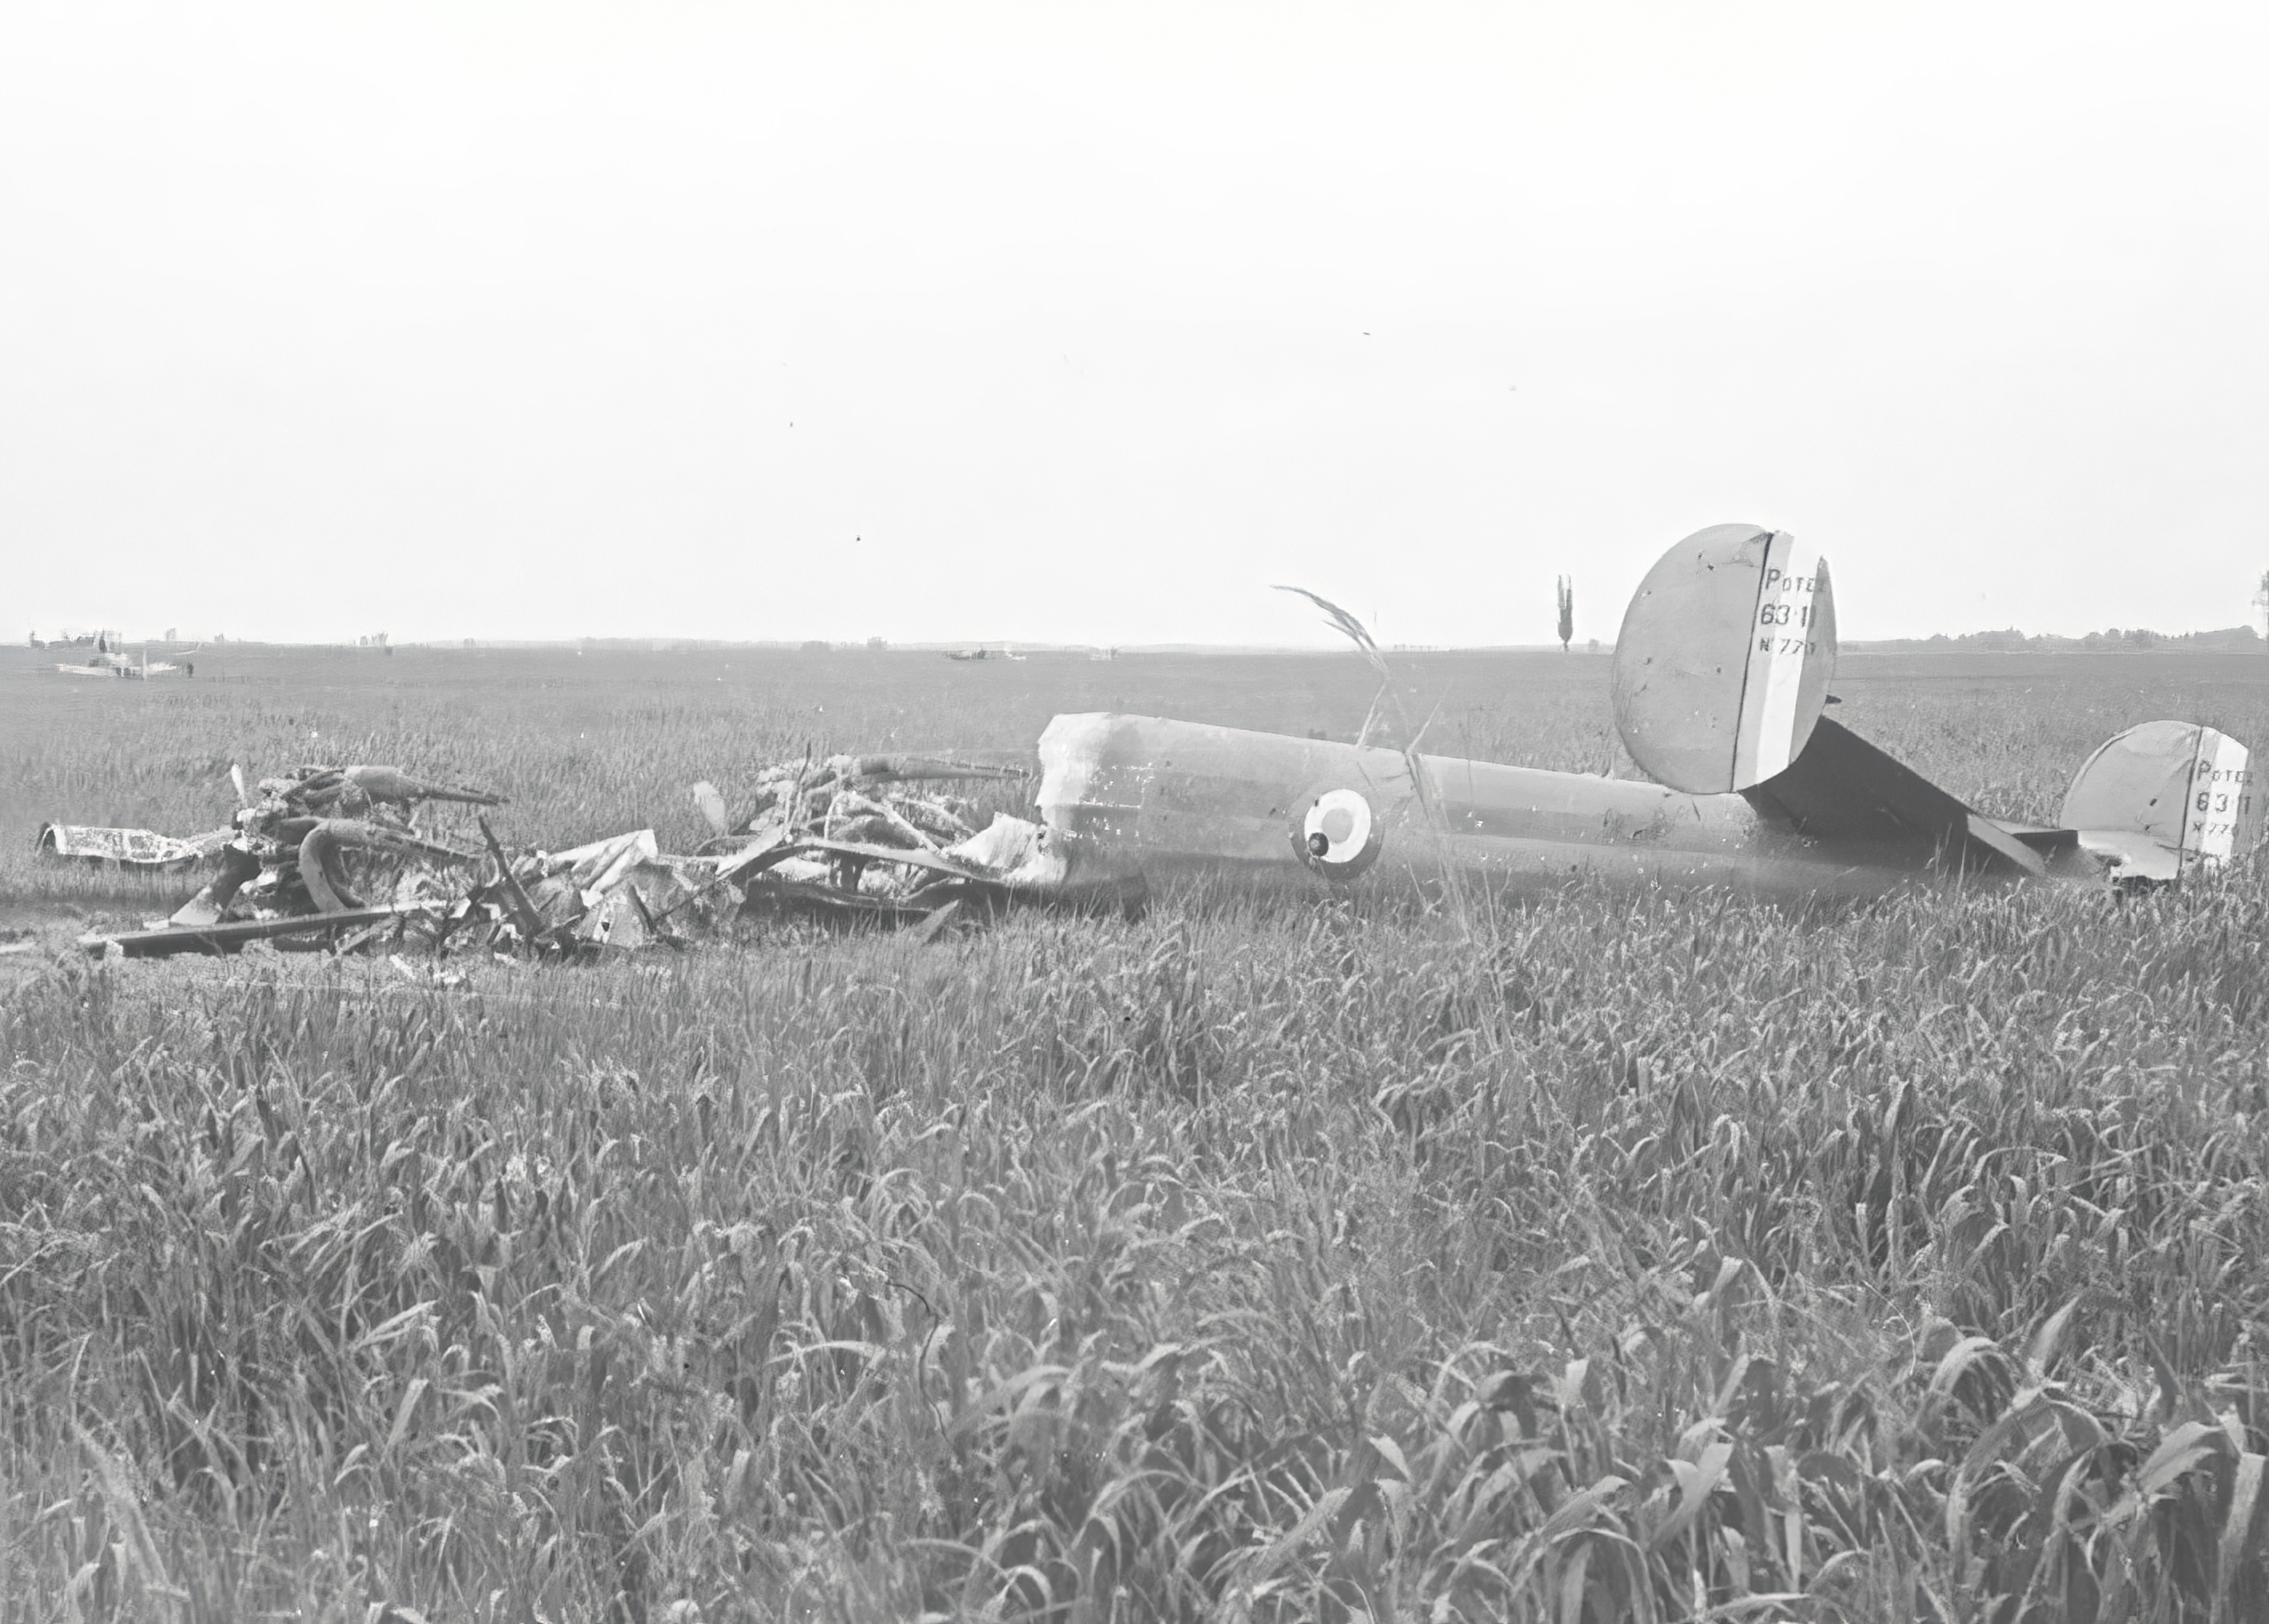 French Airforce Potez 63.11 sn776 destroyed near Coulonniers east of Paris 11th May 1940 NIOD